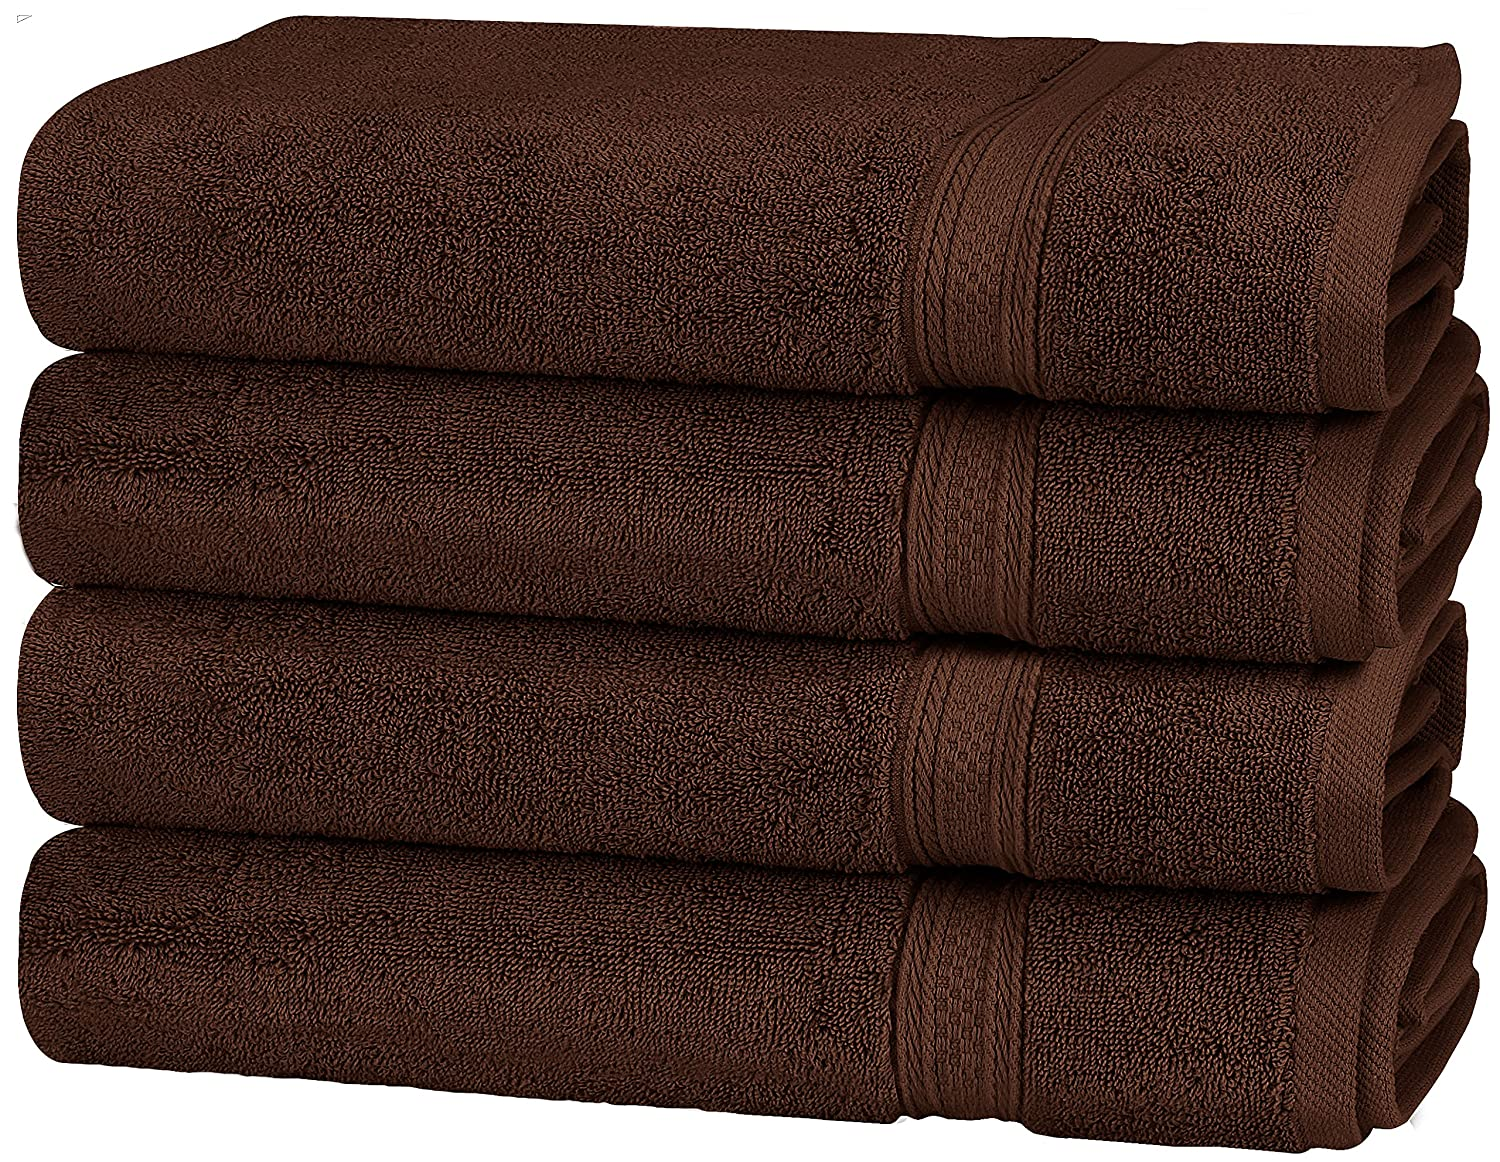 Utopia Towels Premium 700 GSM Cotton Large Hand Towels (Beige, 4-Pack,16 x 28 inches) - Multipurpose Towels for Bath, Hand, Face, Gym and Spa UT0462